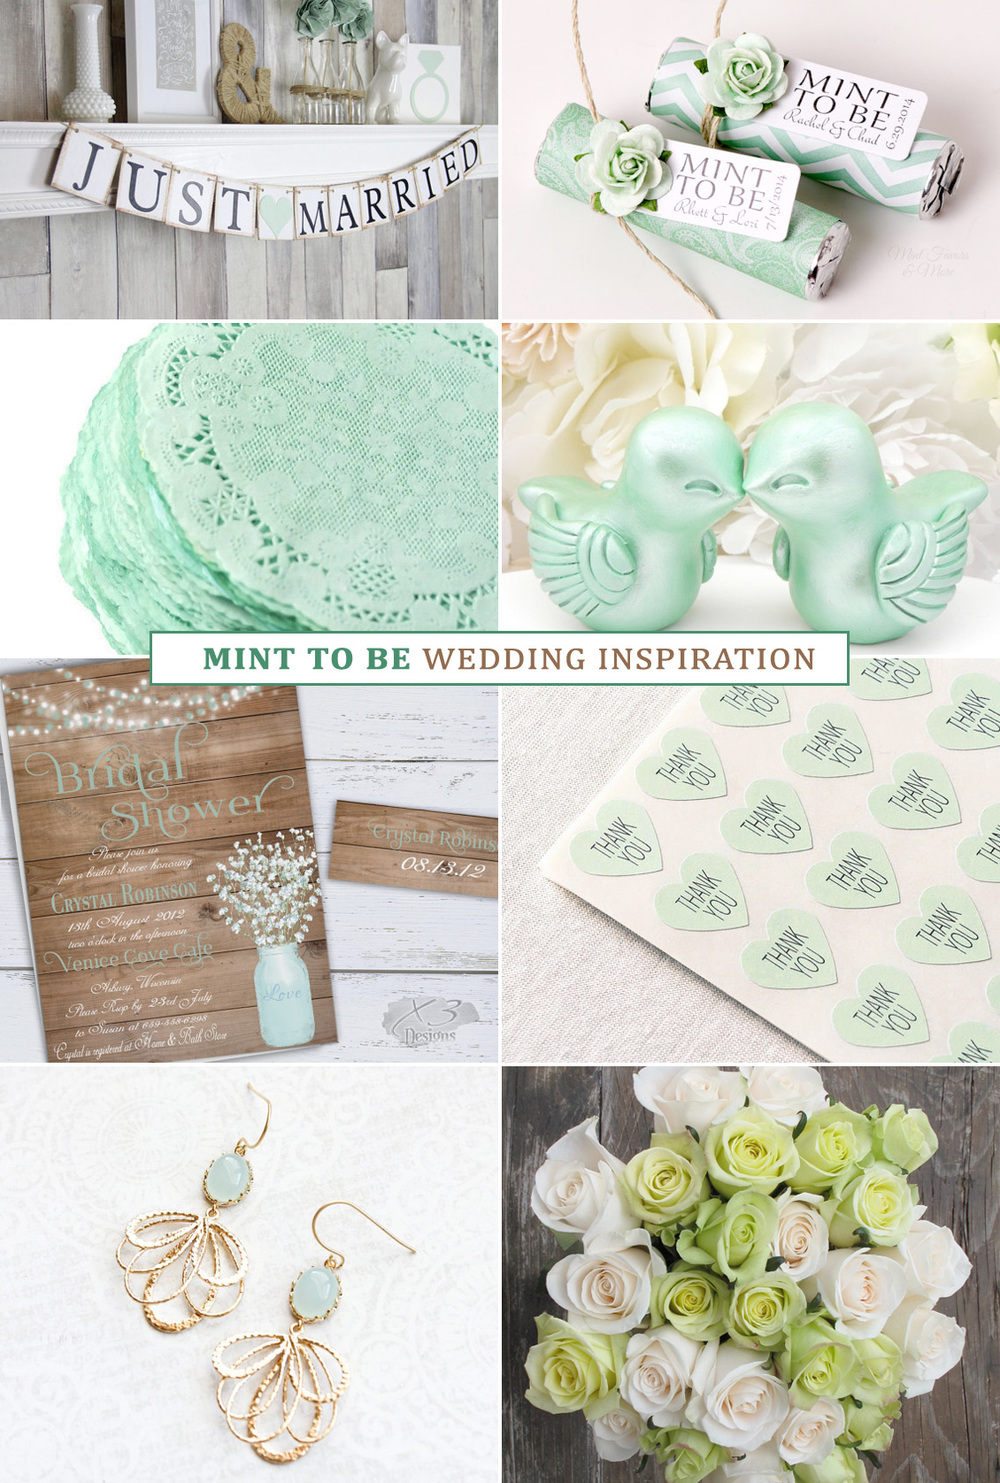 Mint to Be Handmade Wedding Inspiration Board